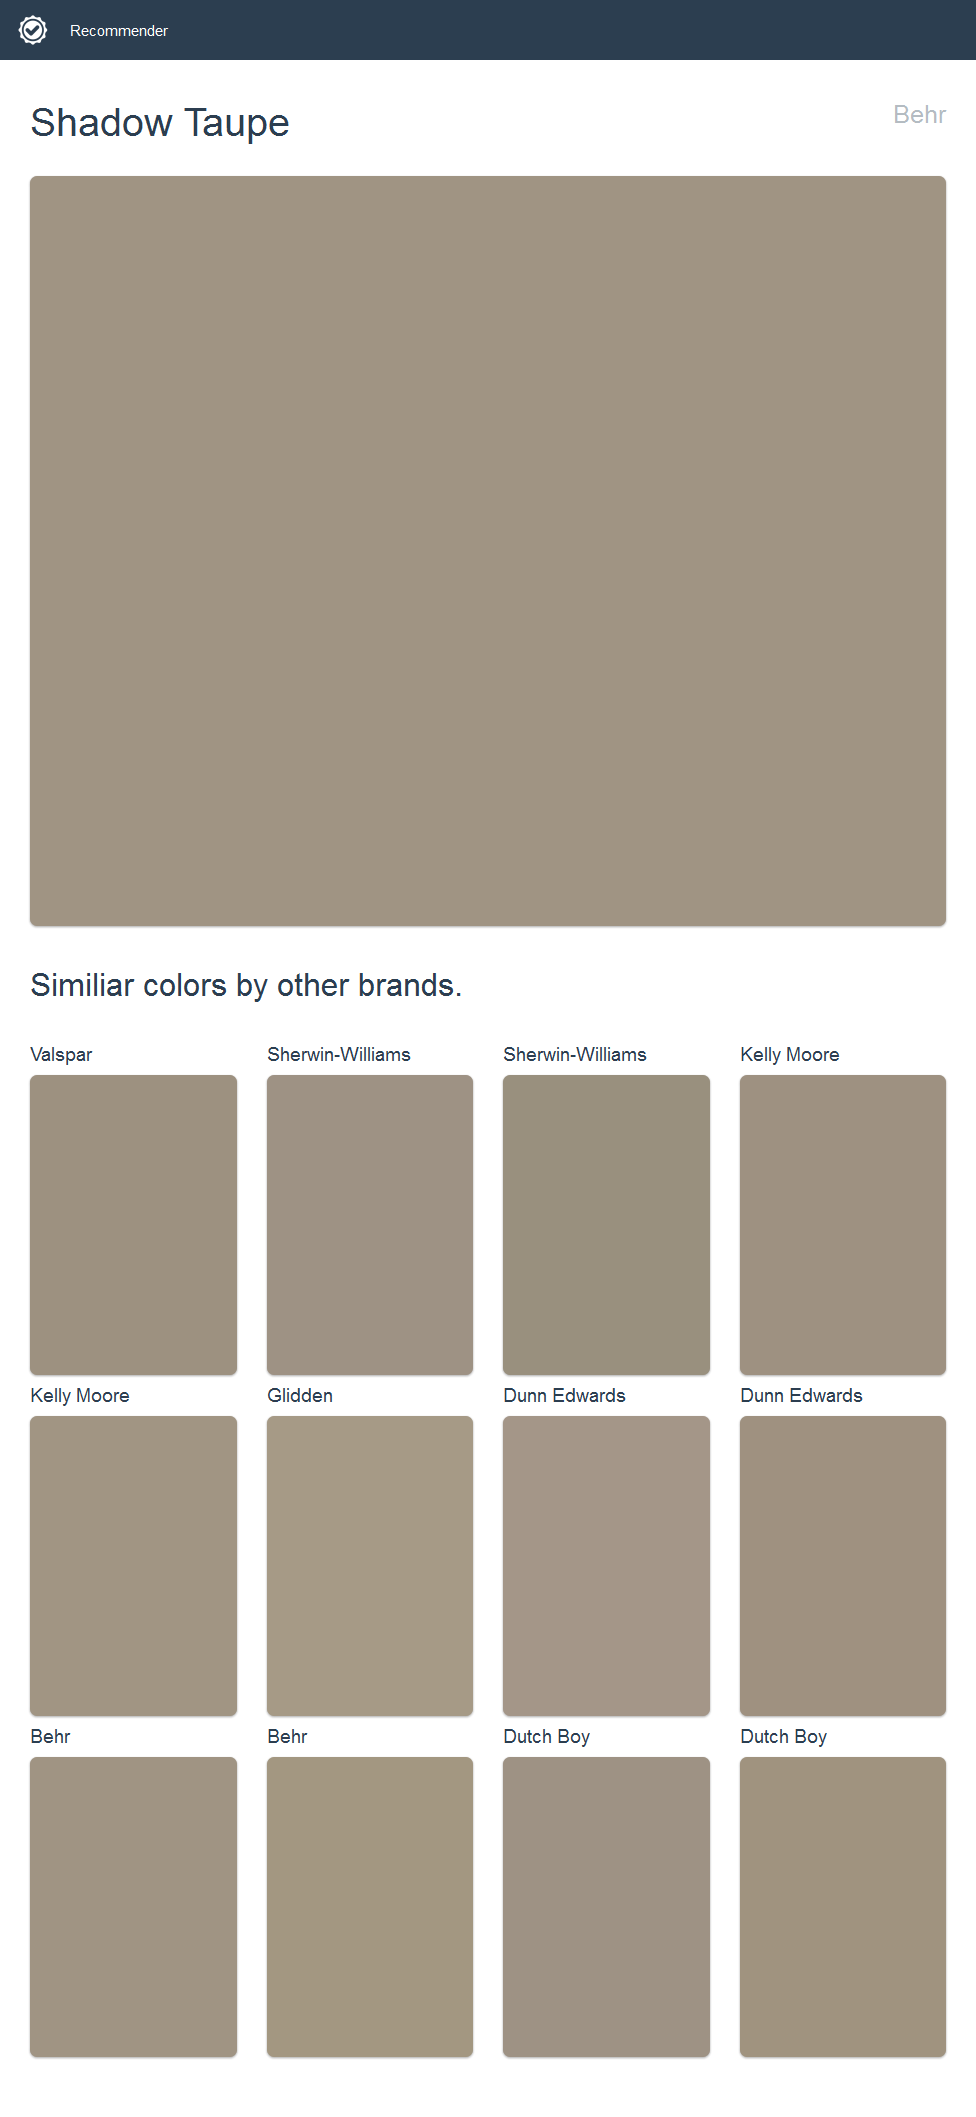 Shadow Taupe Behr Click The Image To See Similiar Colors By